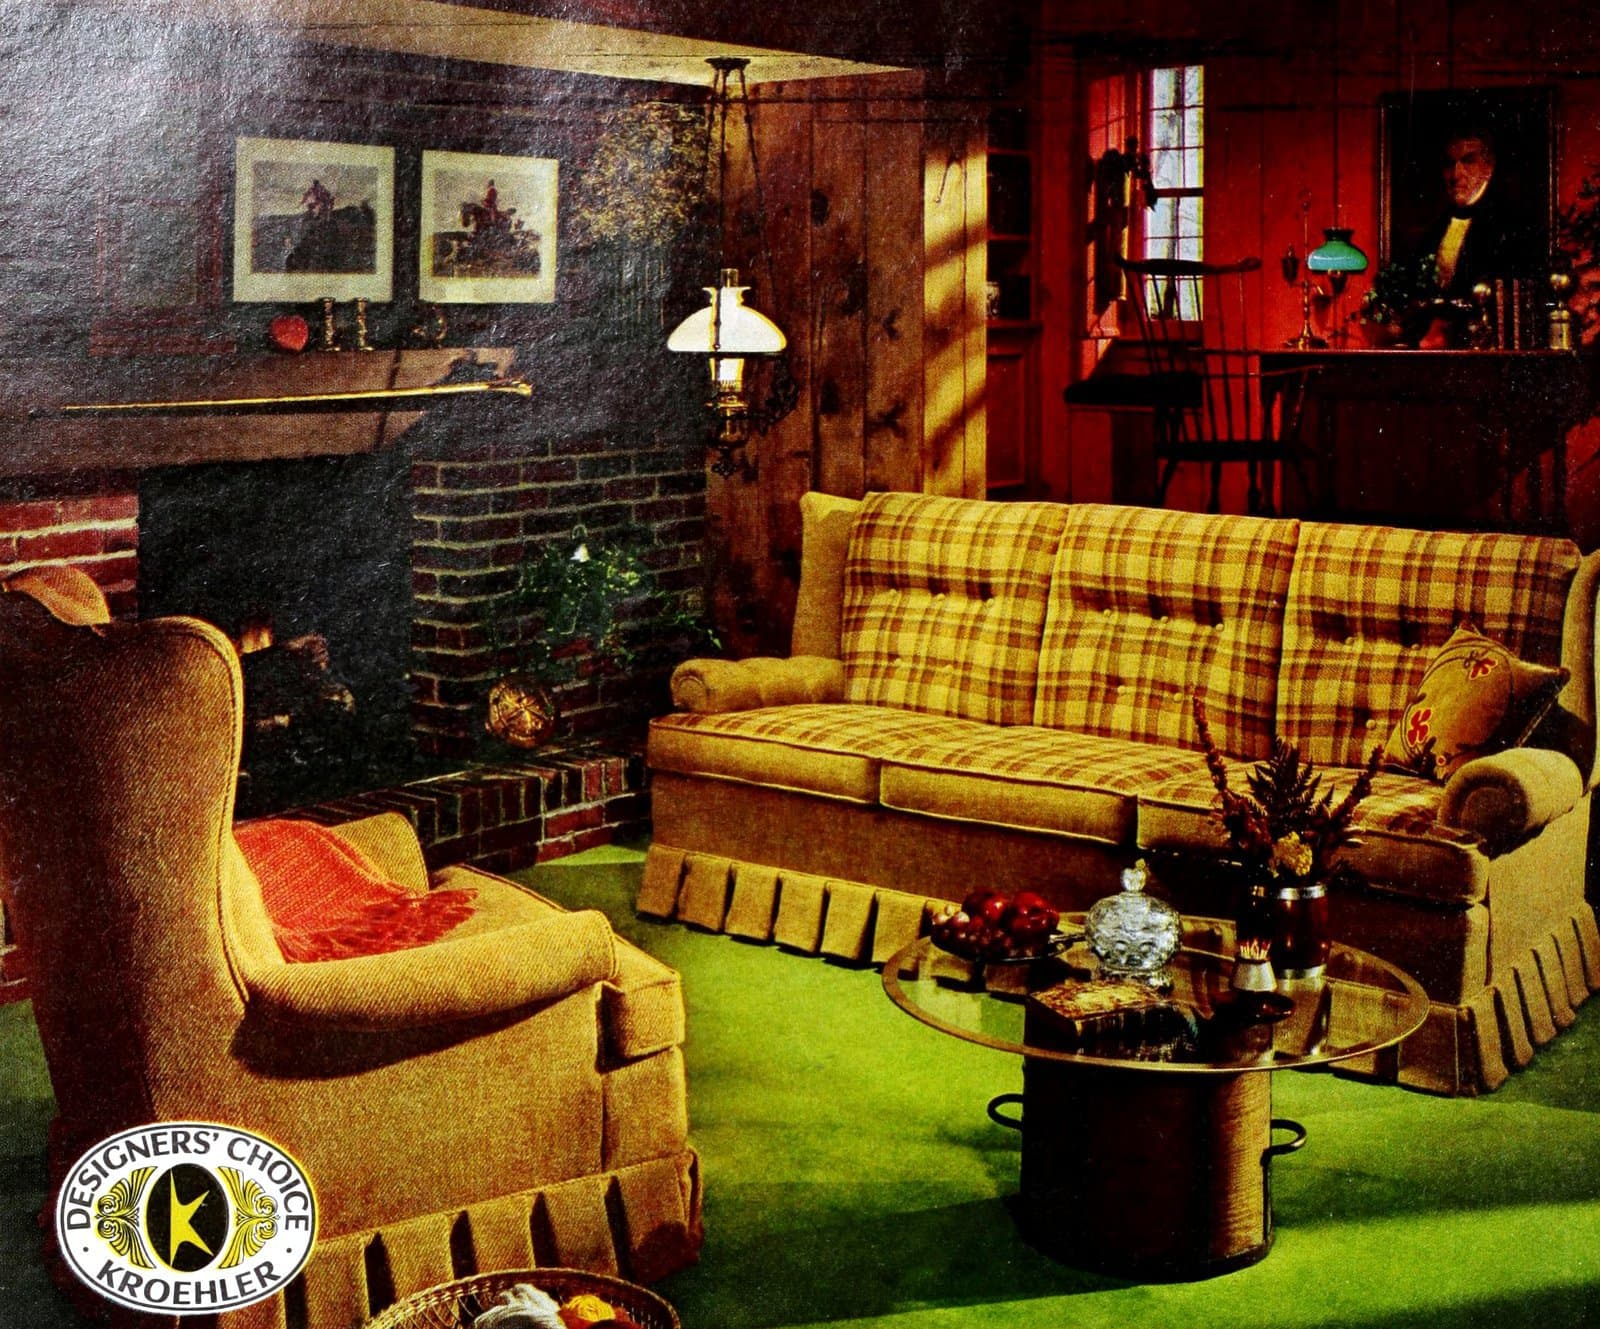 Big yellow vintage sofa with matching easy chair (1969)